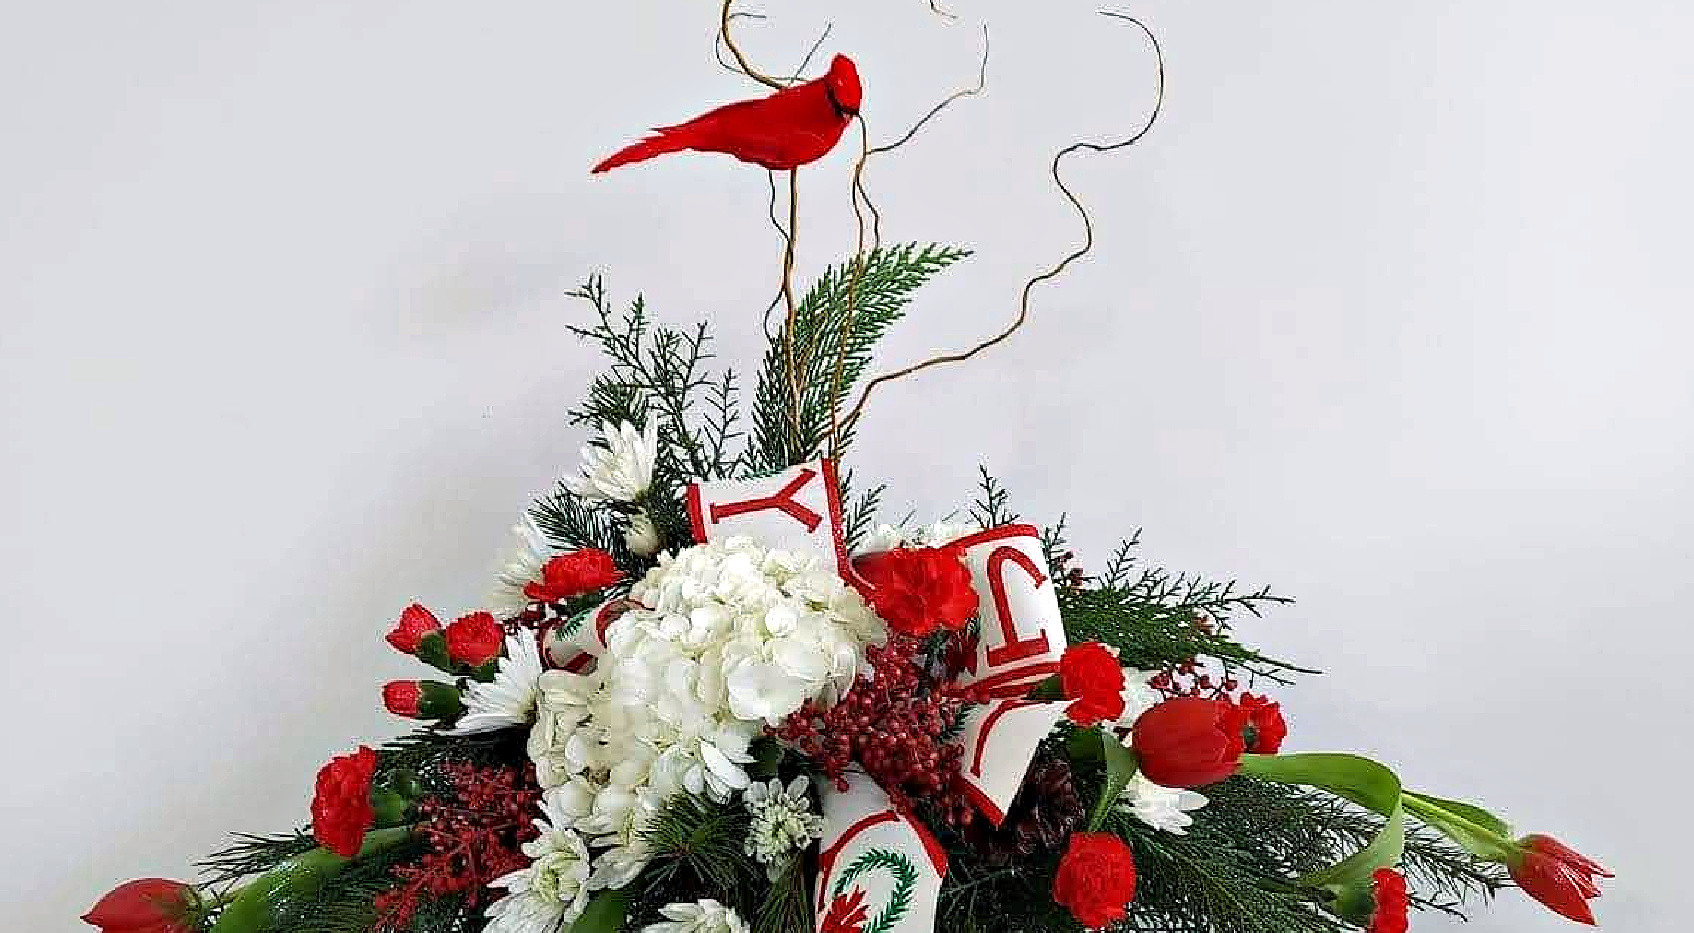 Bird of Christmas